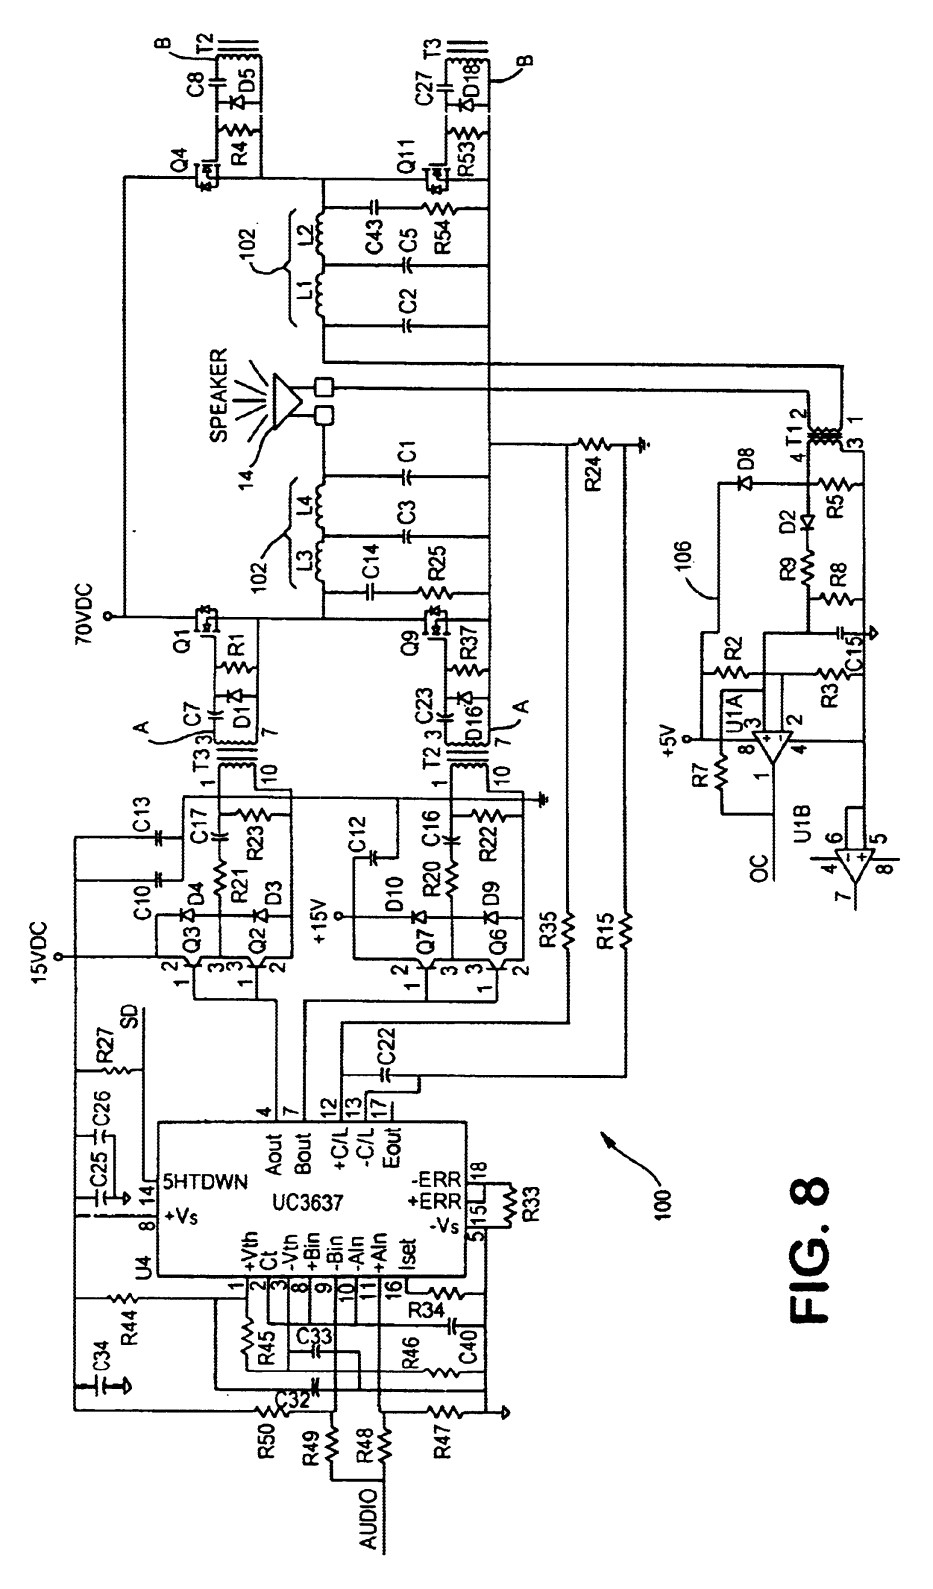 whelen hhs2200 remote siren wiring diagram